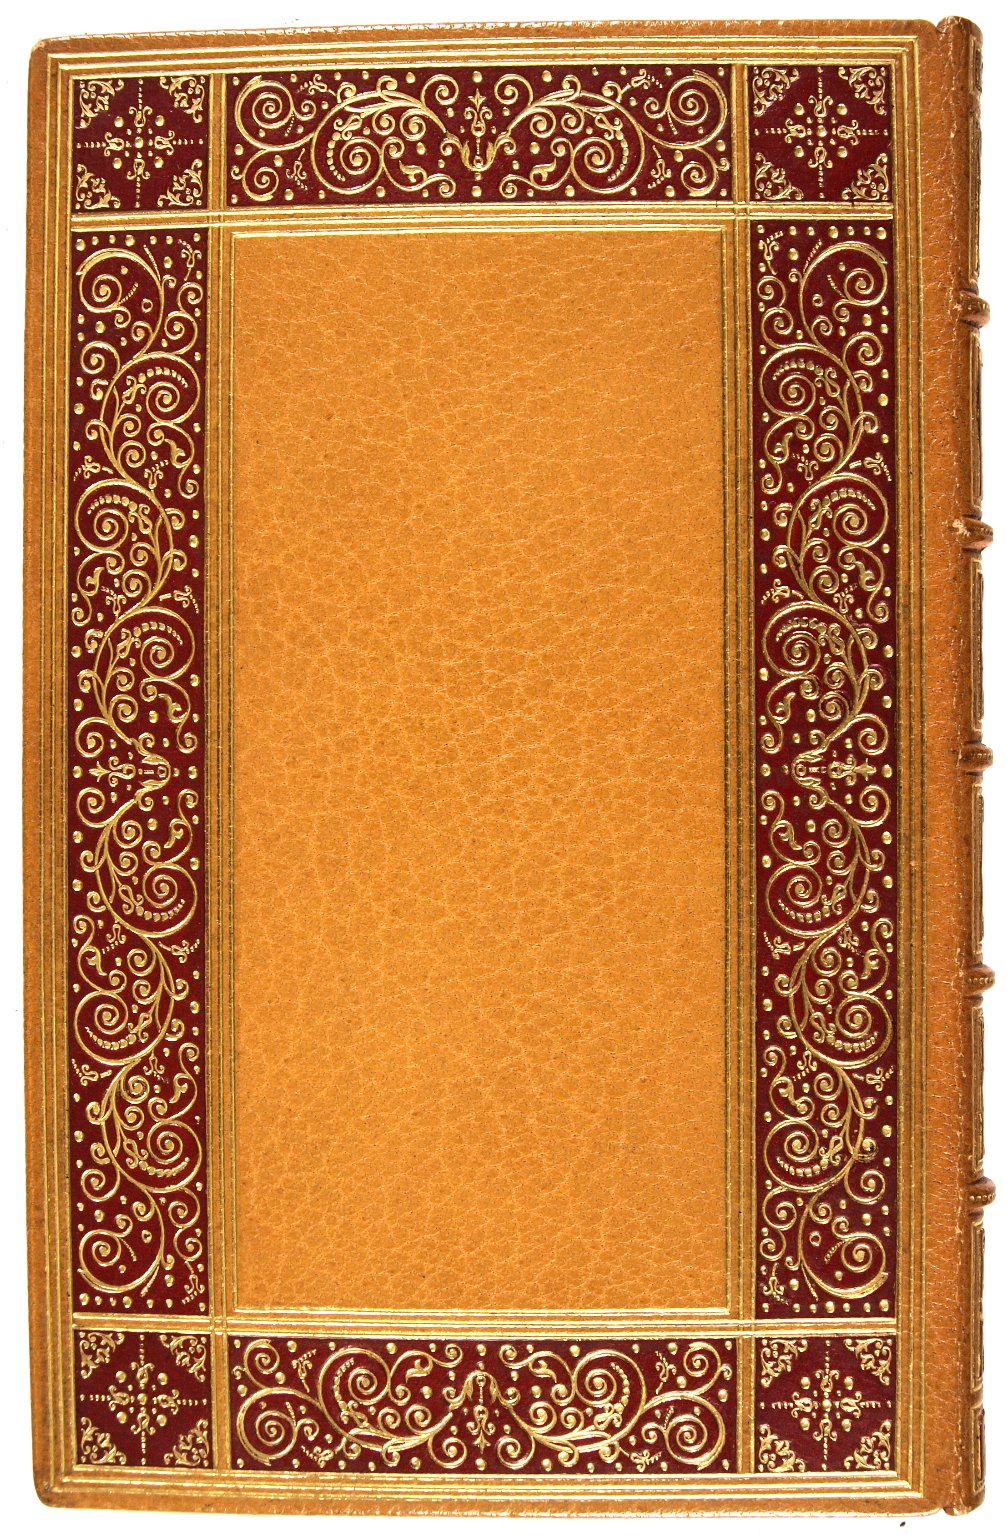 Back cover, M1711.